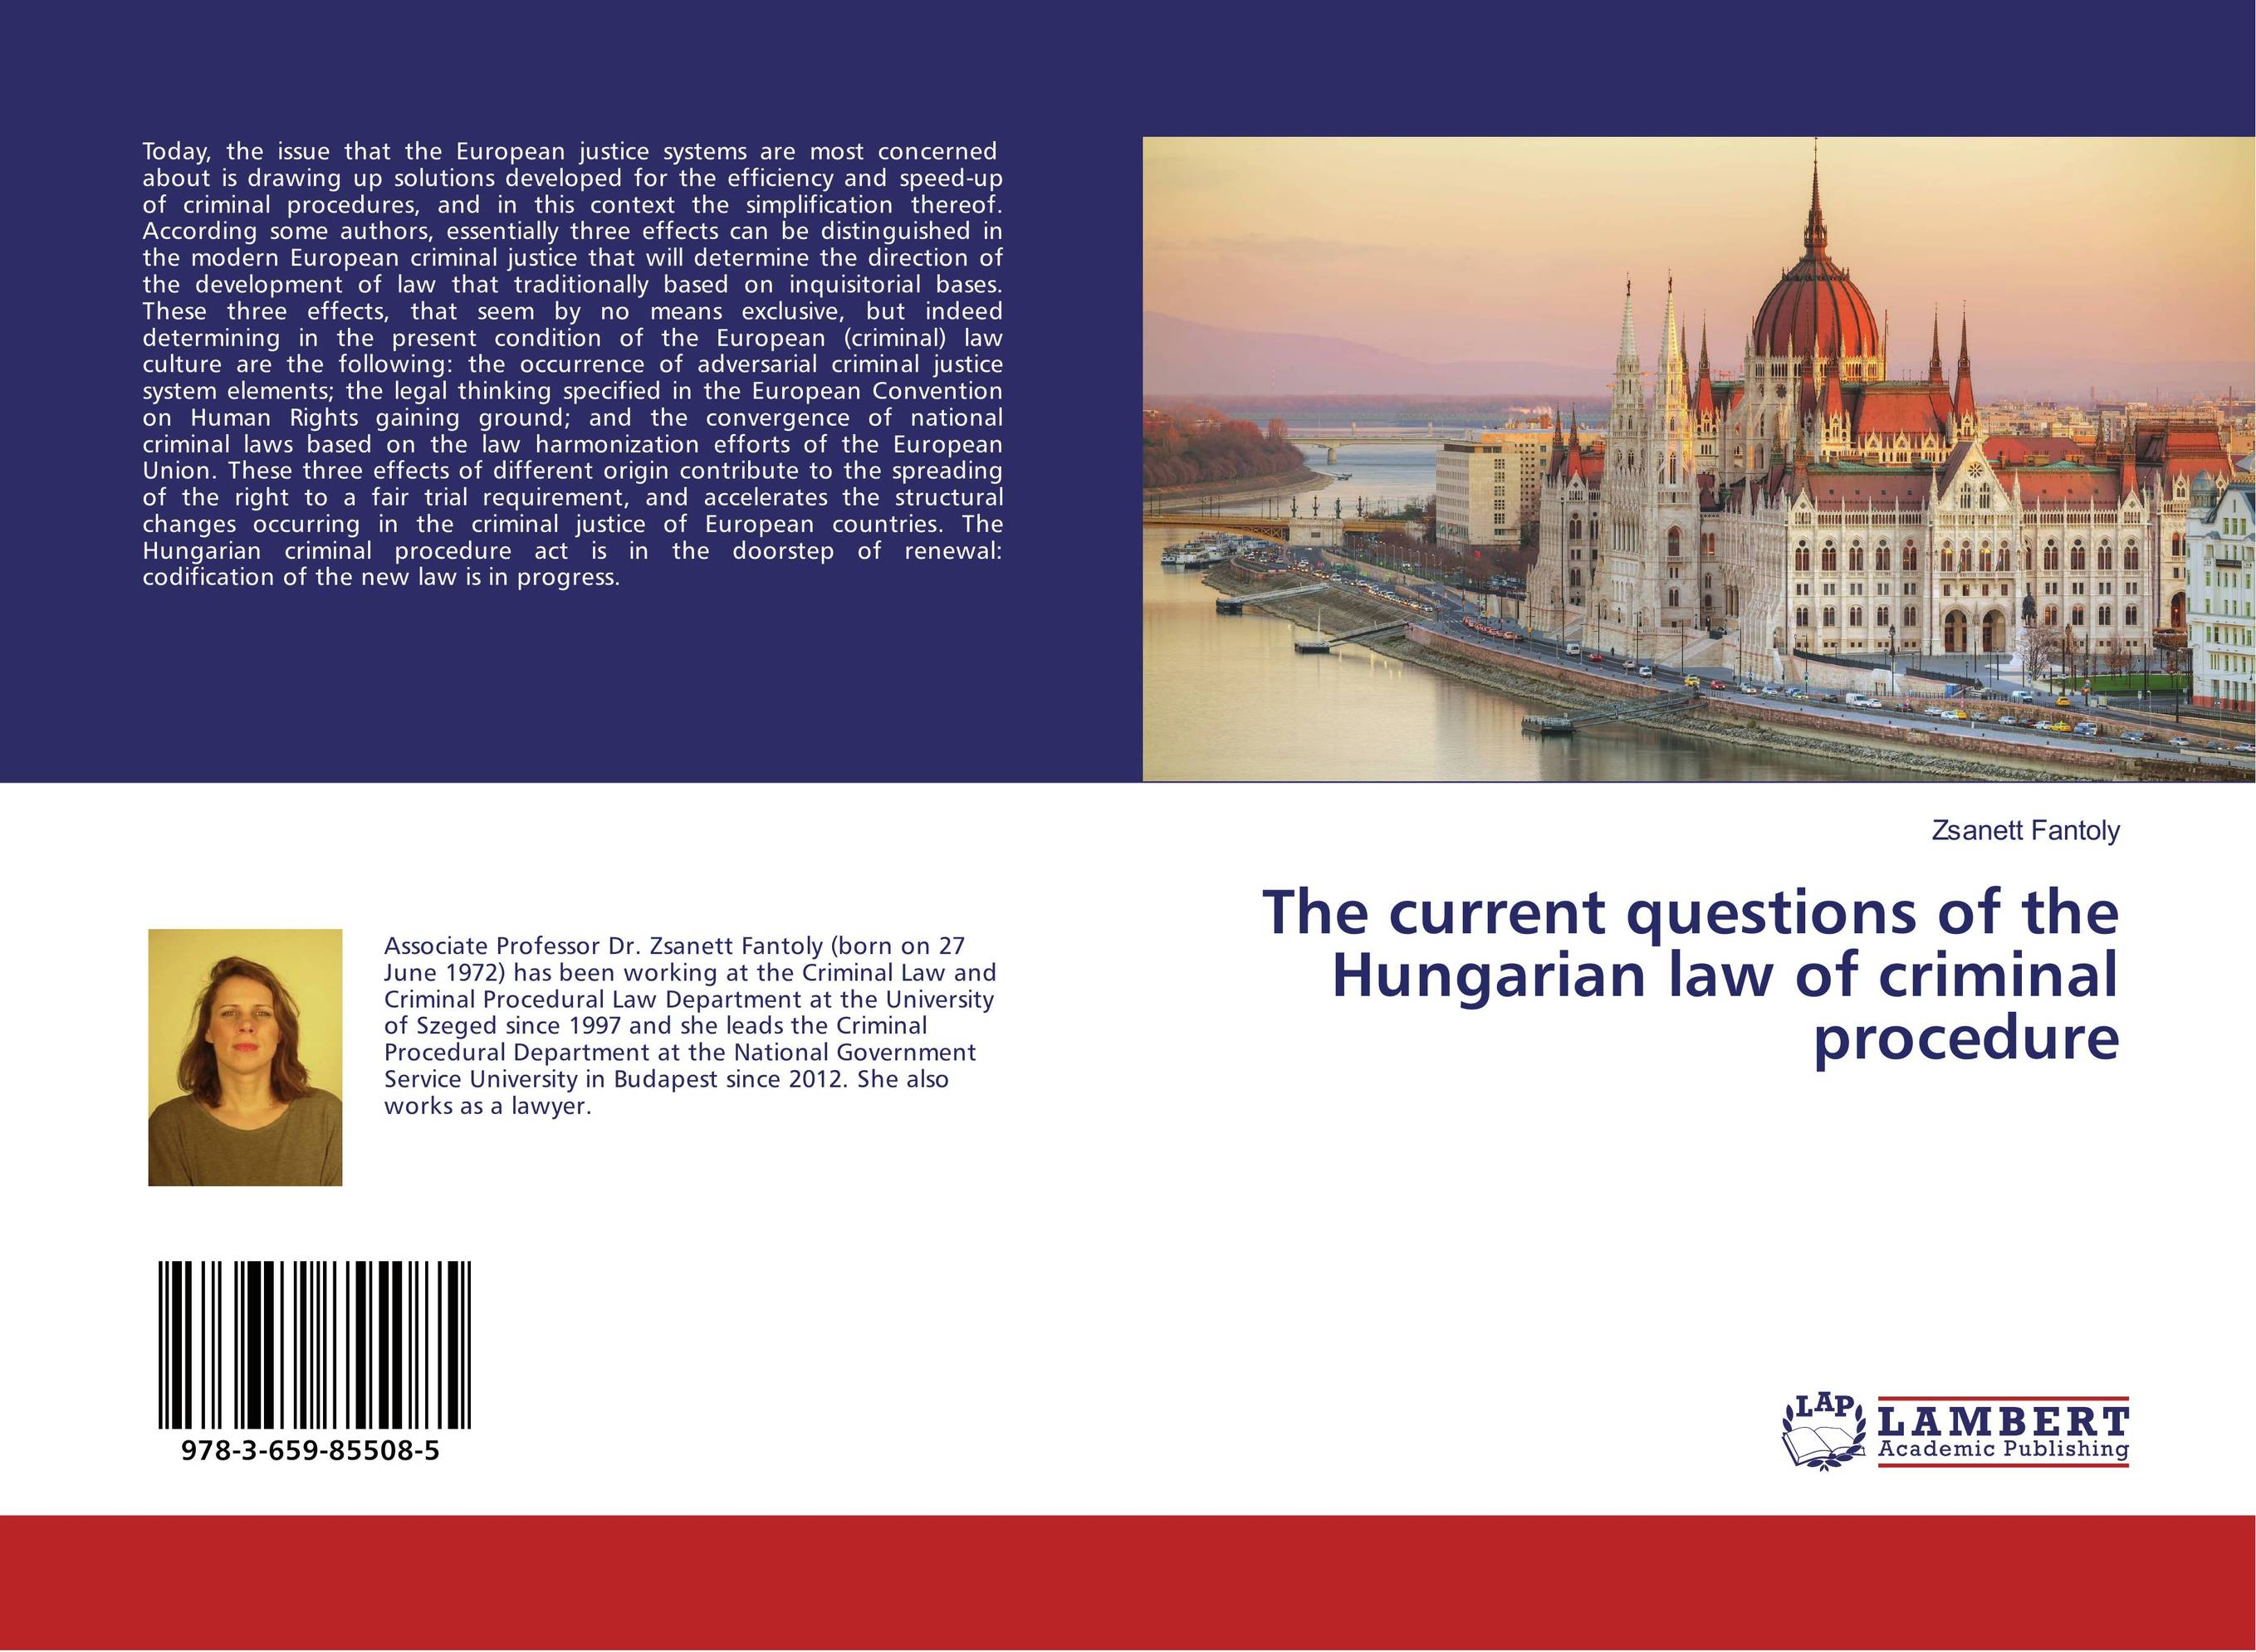 The current questions of the Hungarian law of criminal procedure european ways of law